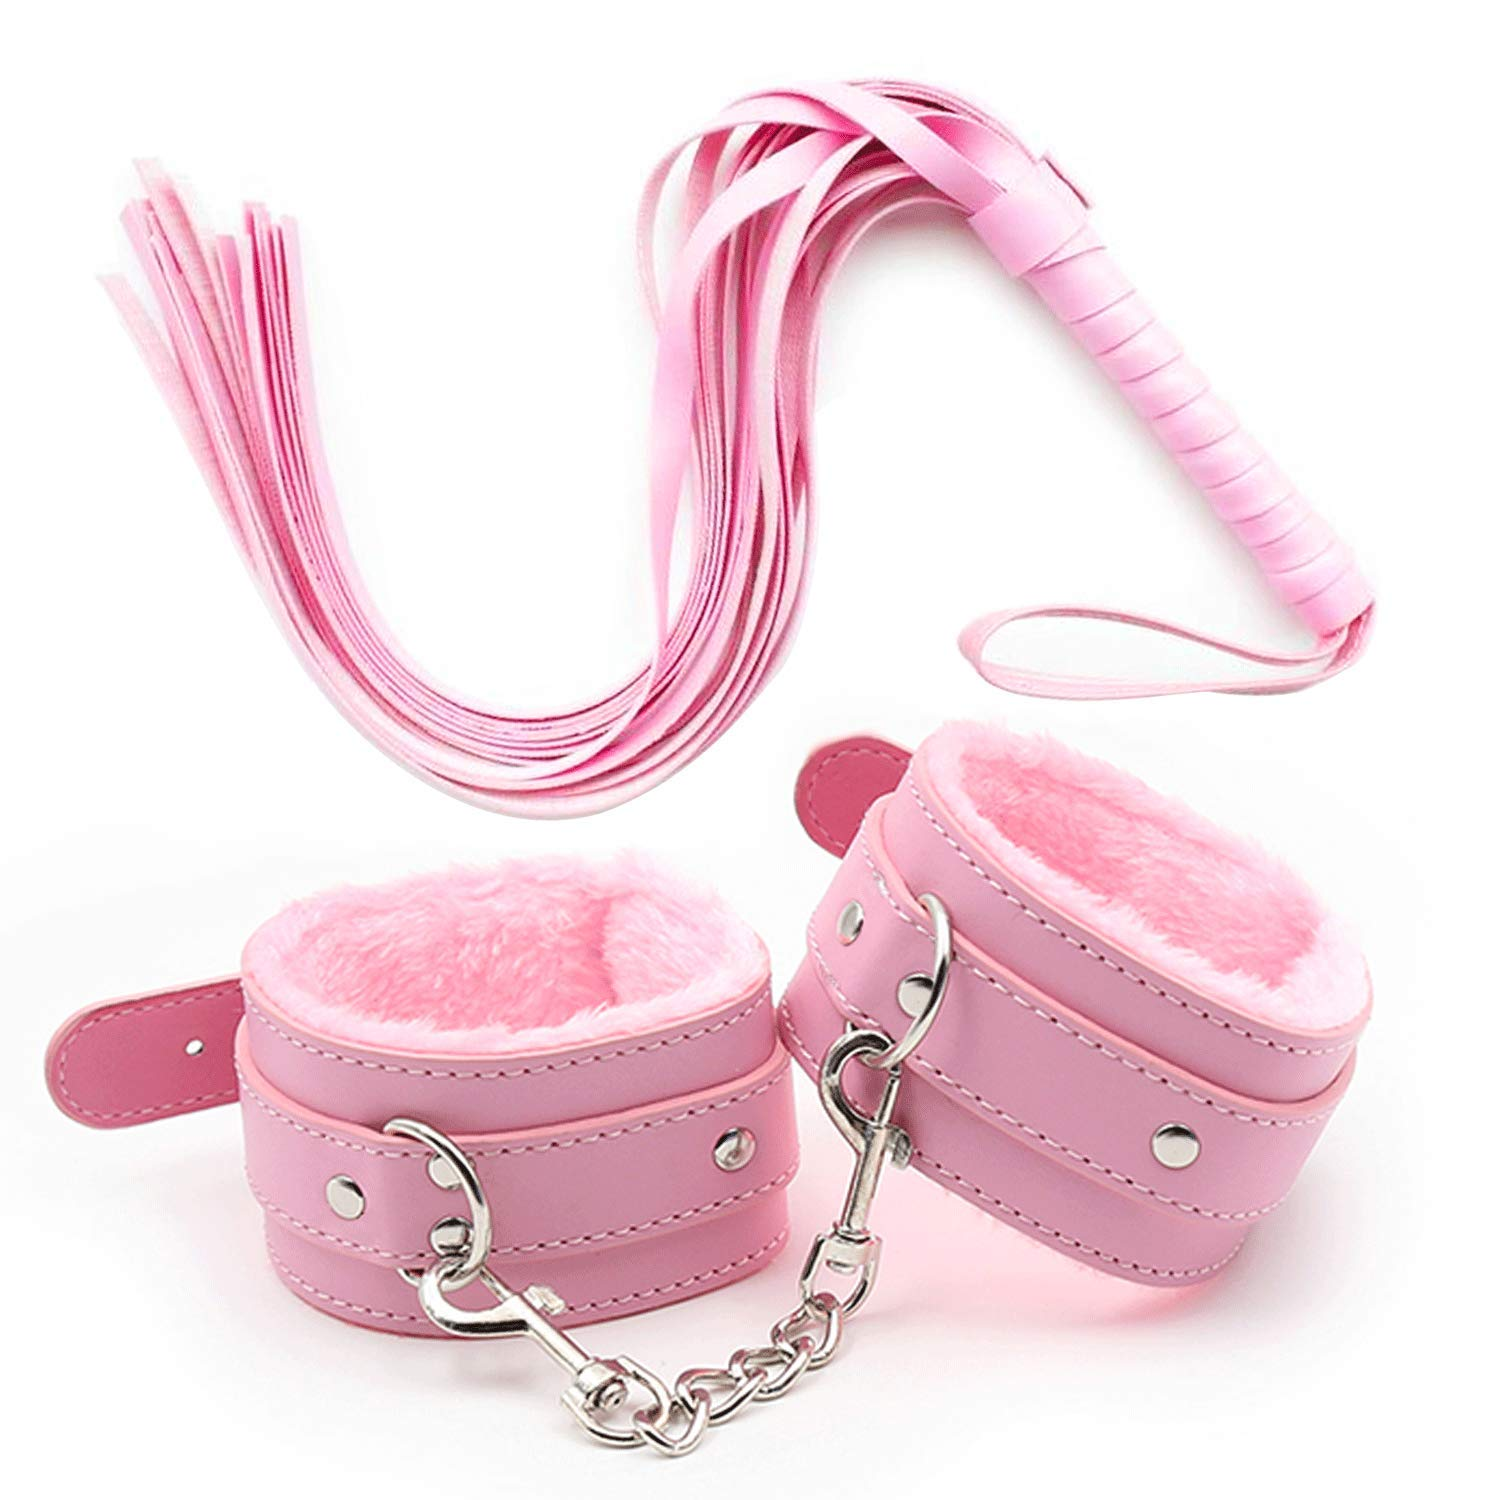 Top 10 Fuzzy Handcuffs